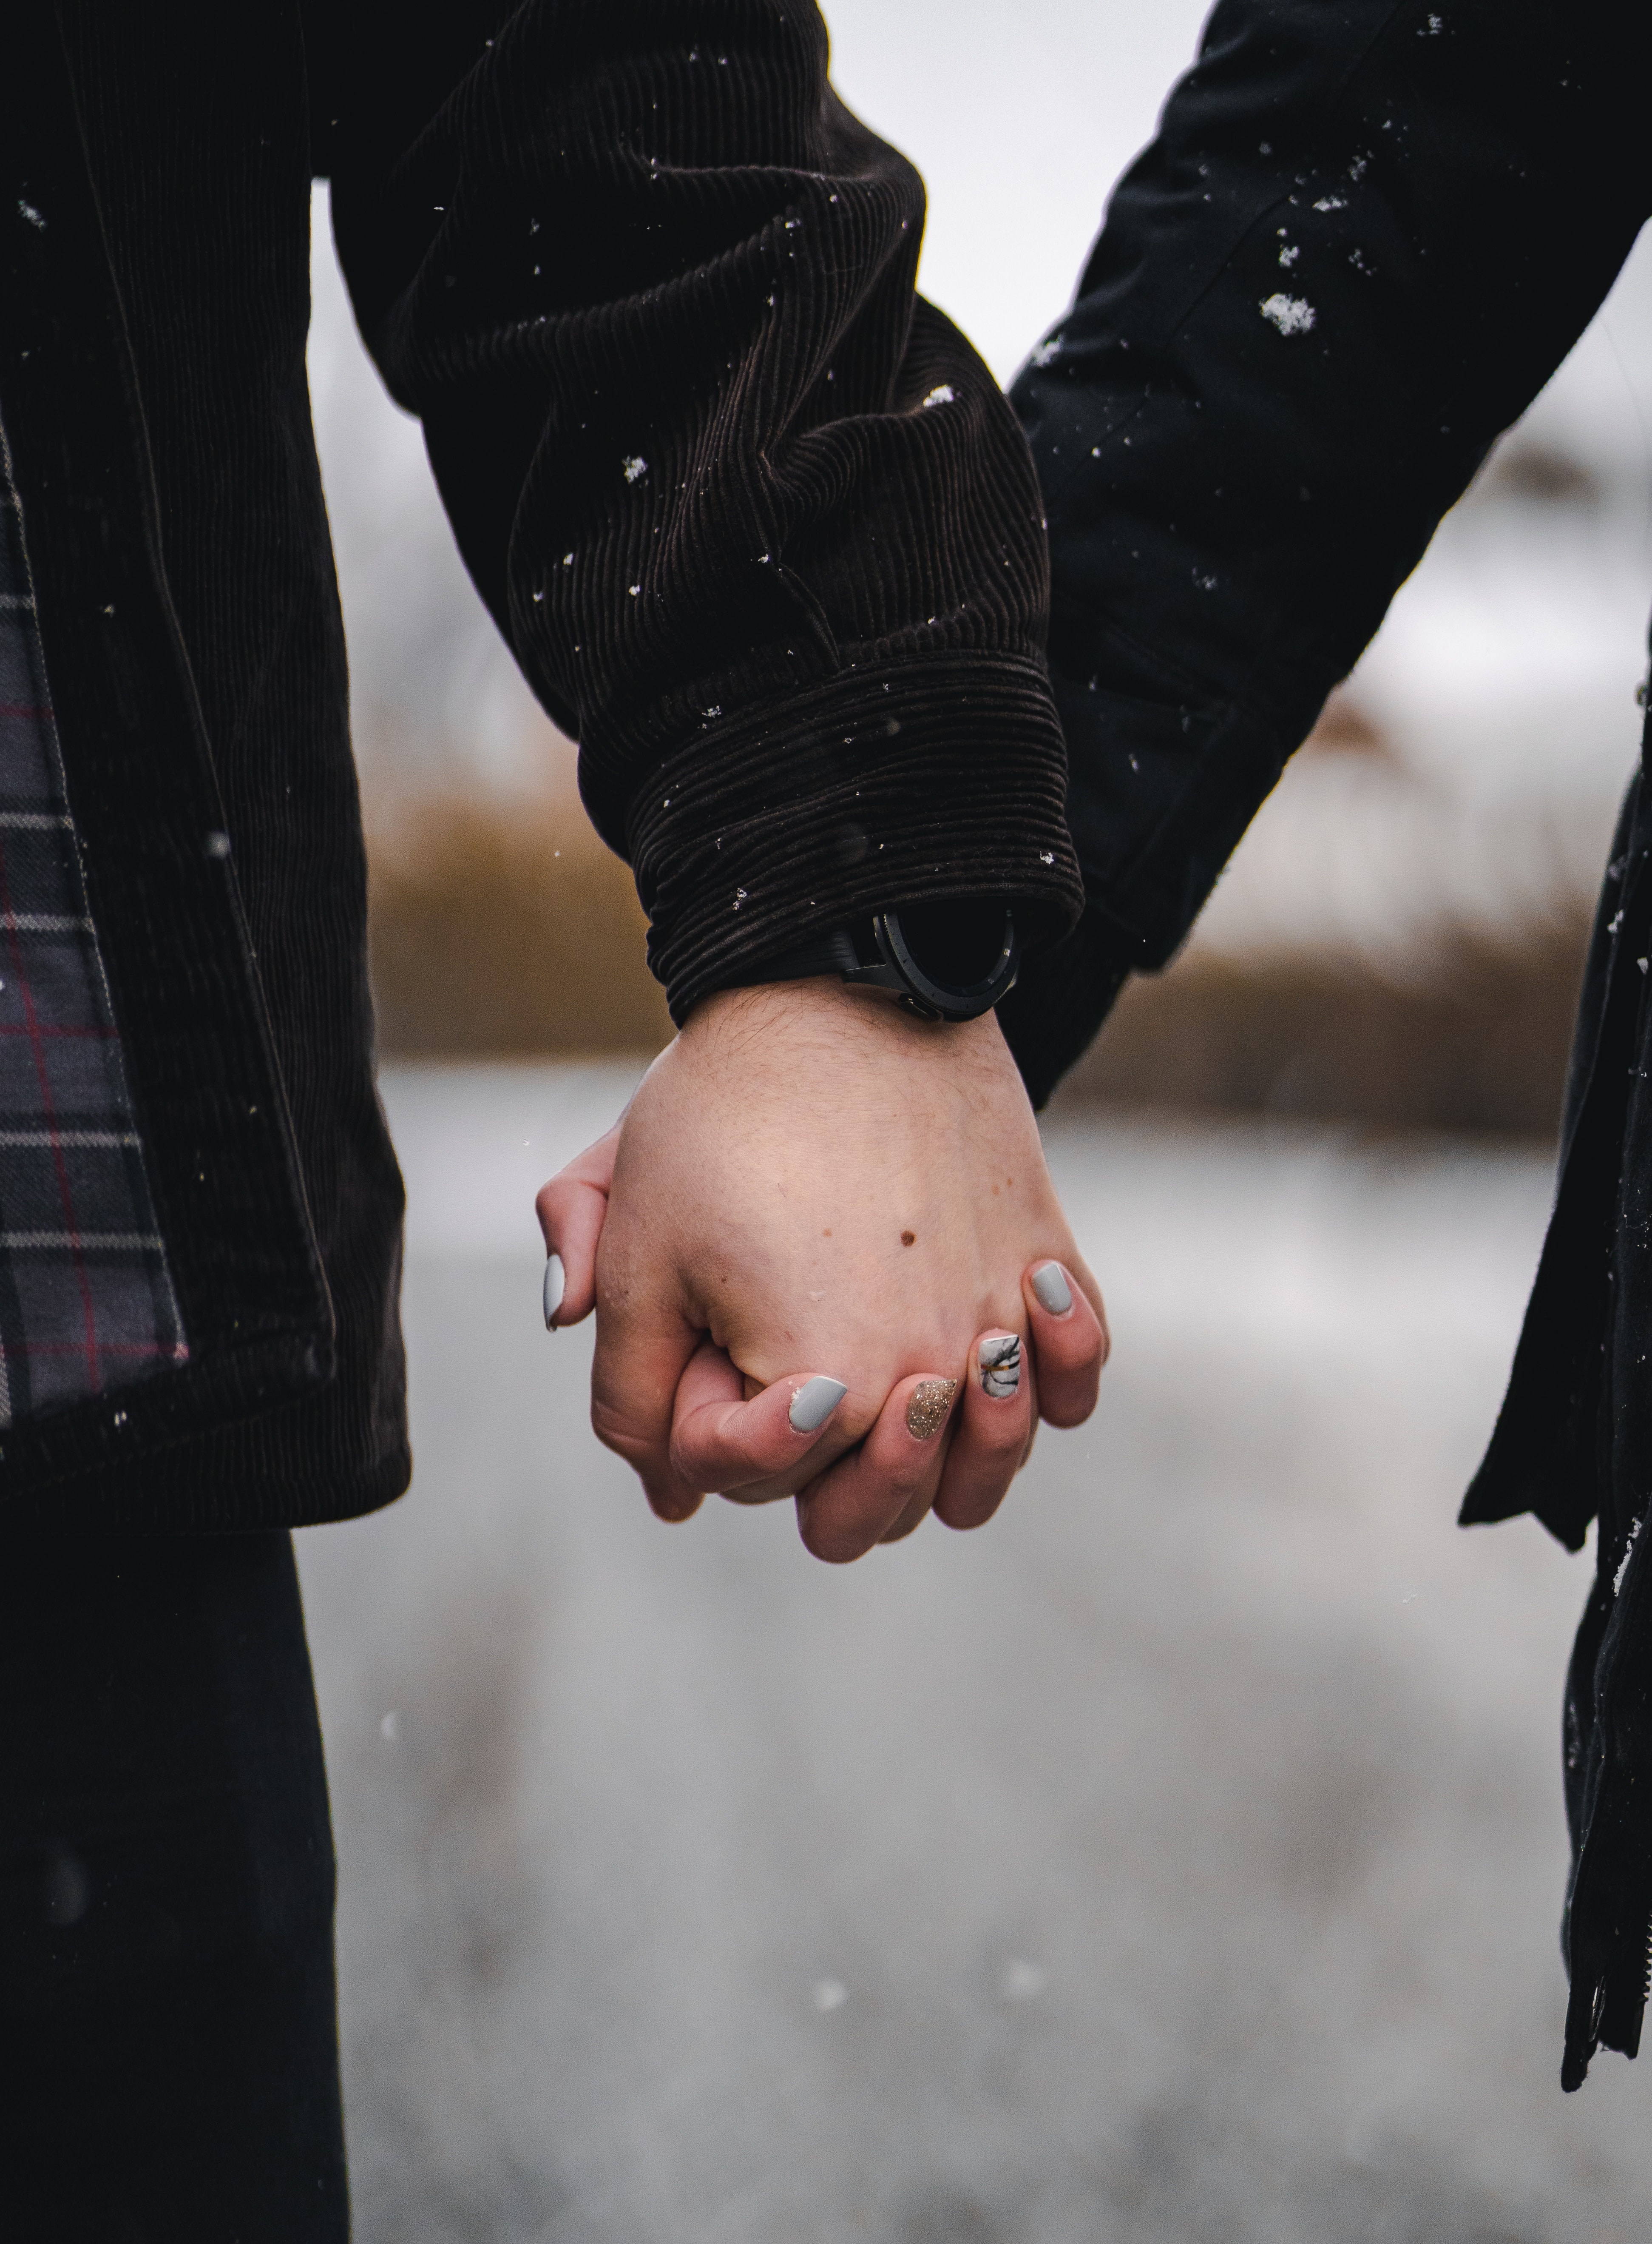 82281 download wallpaper Hands, Couple, Pair, Love, Snow screensavers and pictures for free